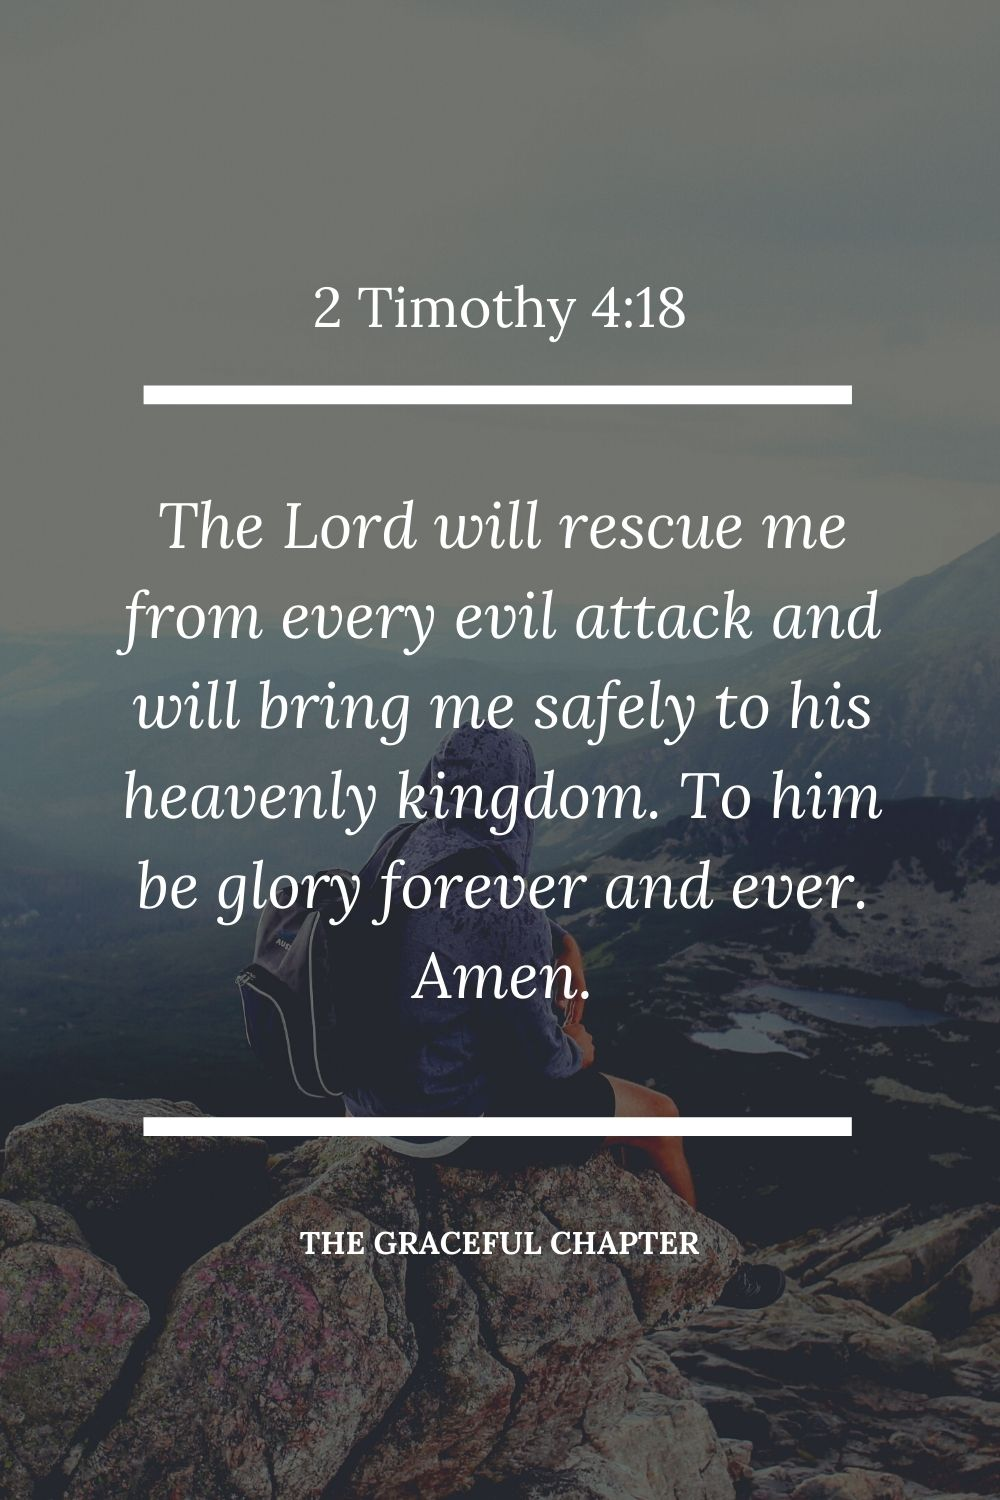 The Lord will rescue me from every evil attack and will bring me safely to his heavenly kingdom. To him be glory forever and ever. Amen. 2 Timothy 4:18